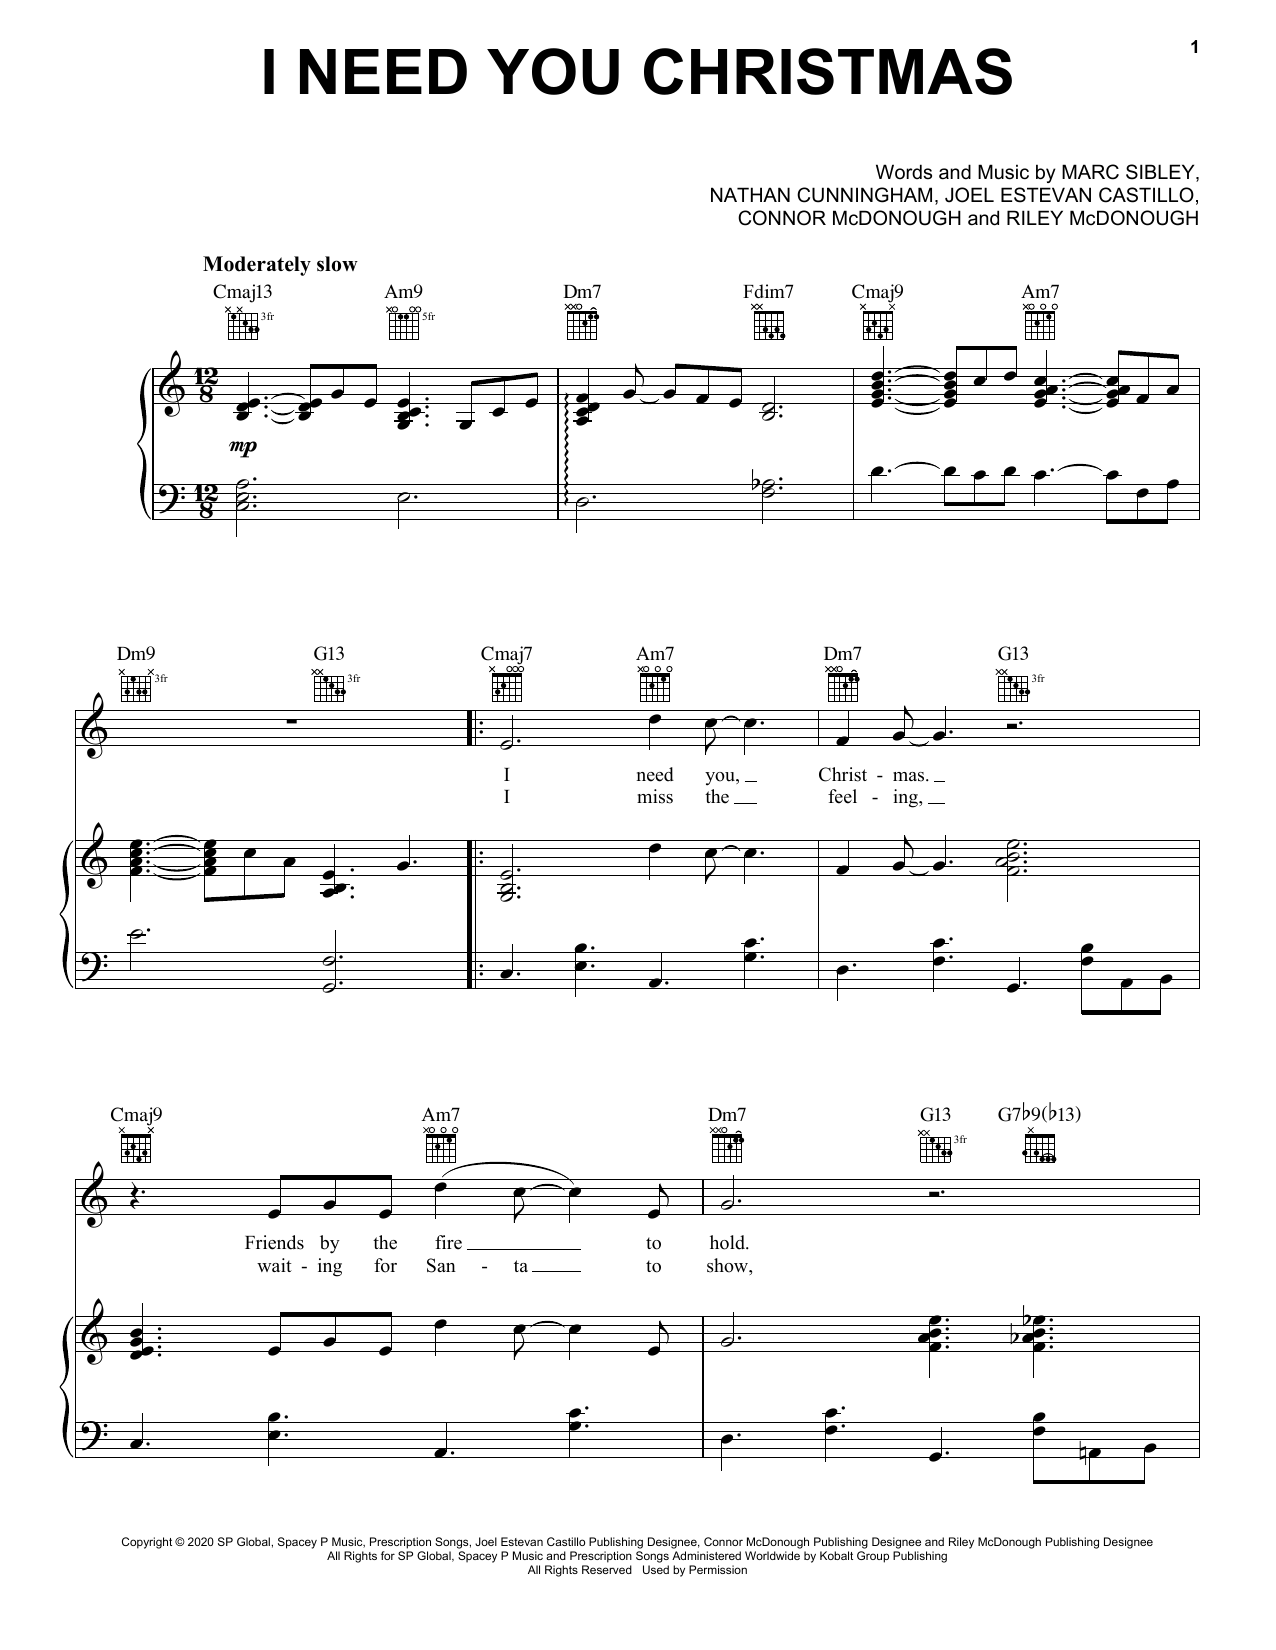 Jonas Brothers I Need You Christmas sheet music notes and chords. Download Printable PDF.